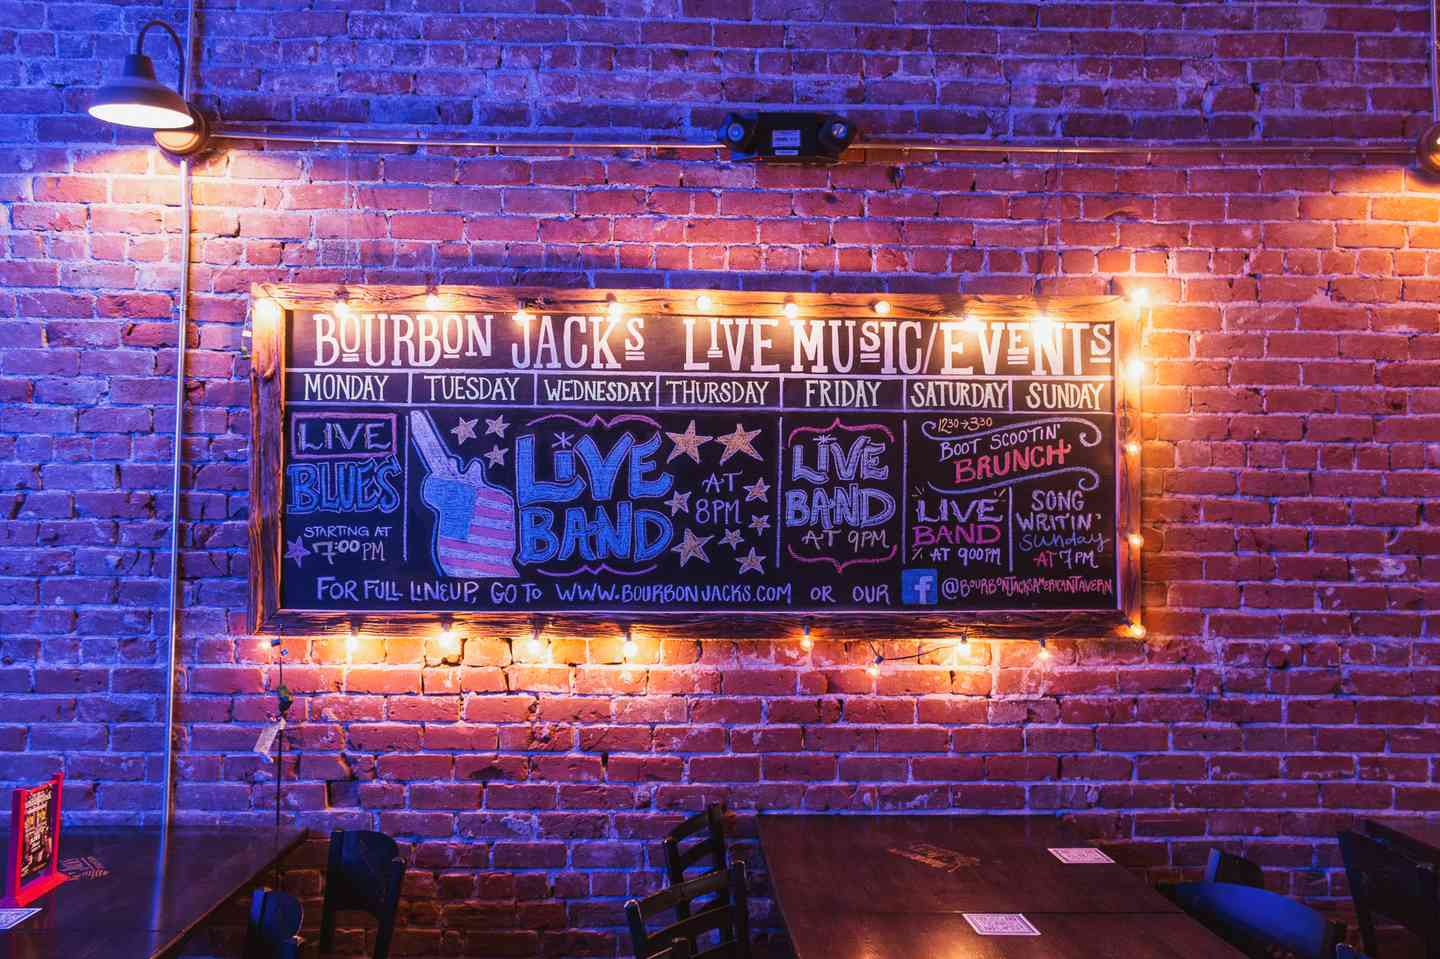 Bourbon Jack's Live Music and Events chalk board